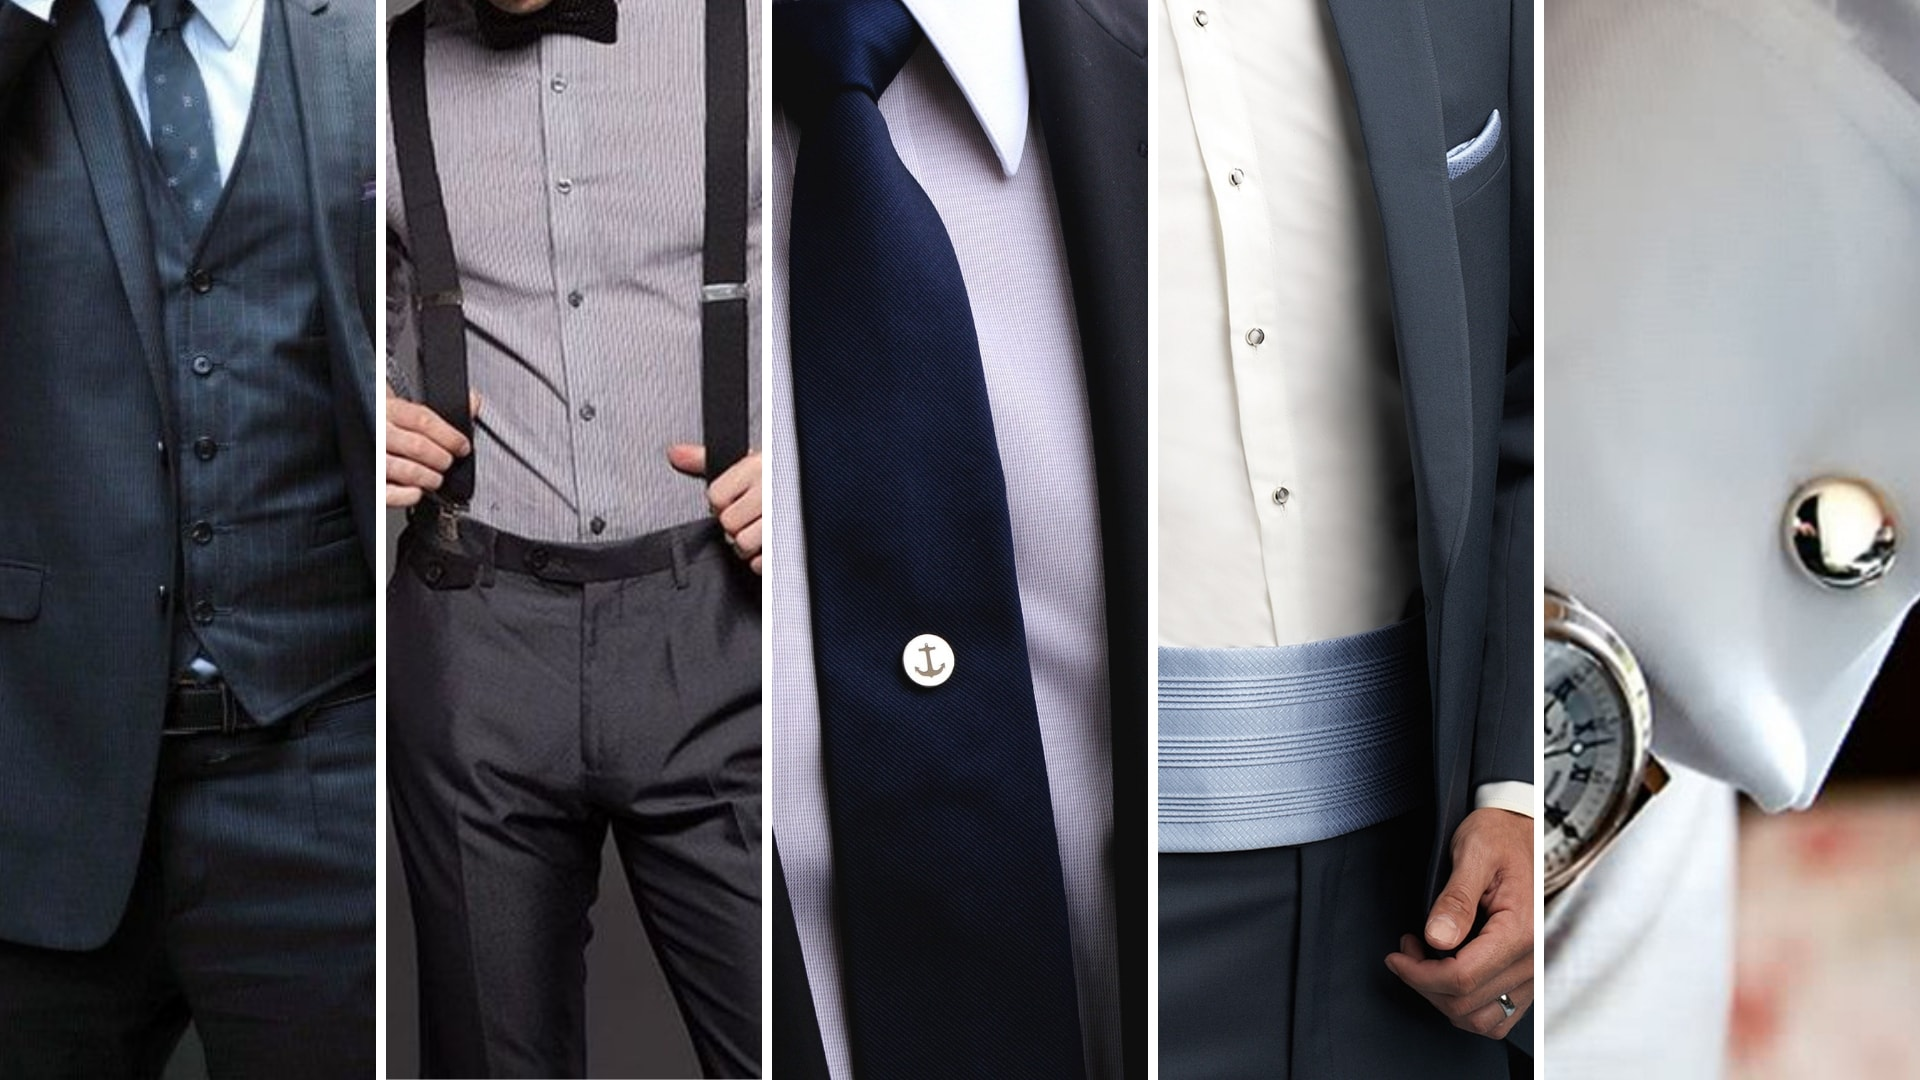 Trousers for Groom Dress